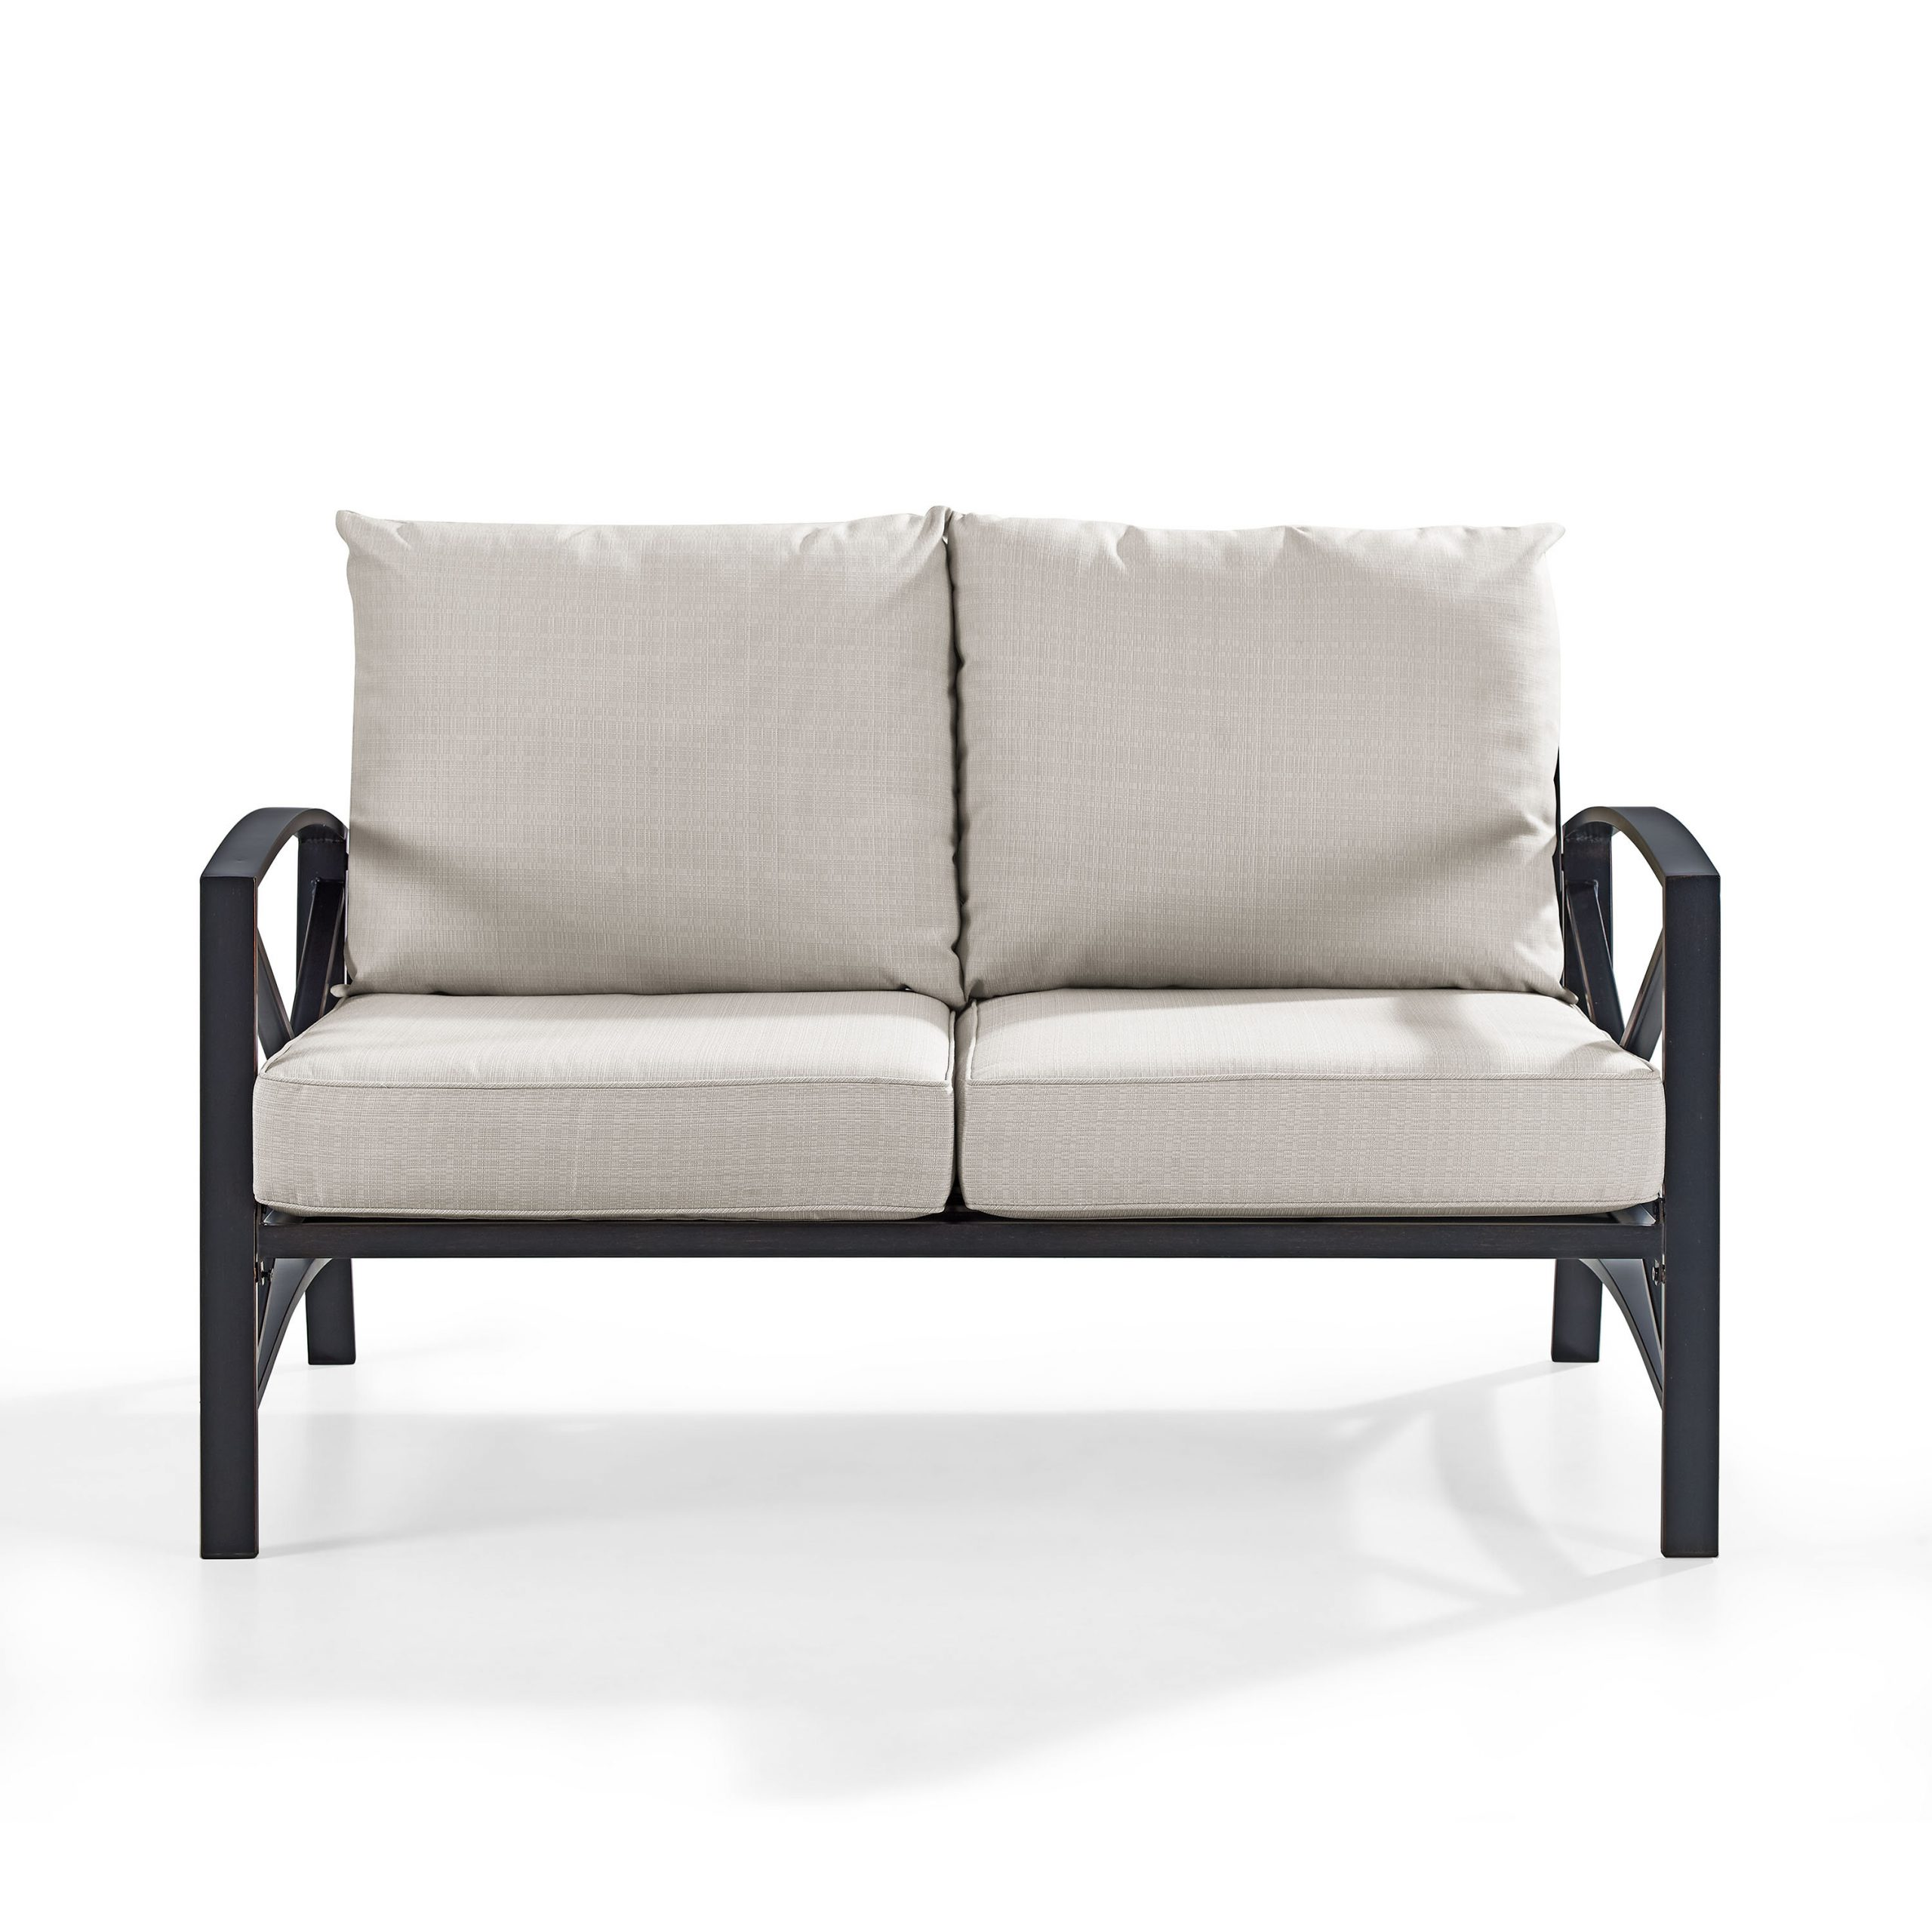 Widely Used Lawson Wicker Loveseats With Cushions With Regard To Freitag Loveseat With Cushions (View 22 of 25)